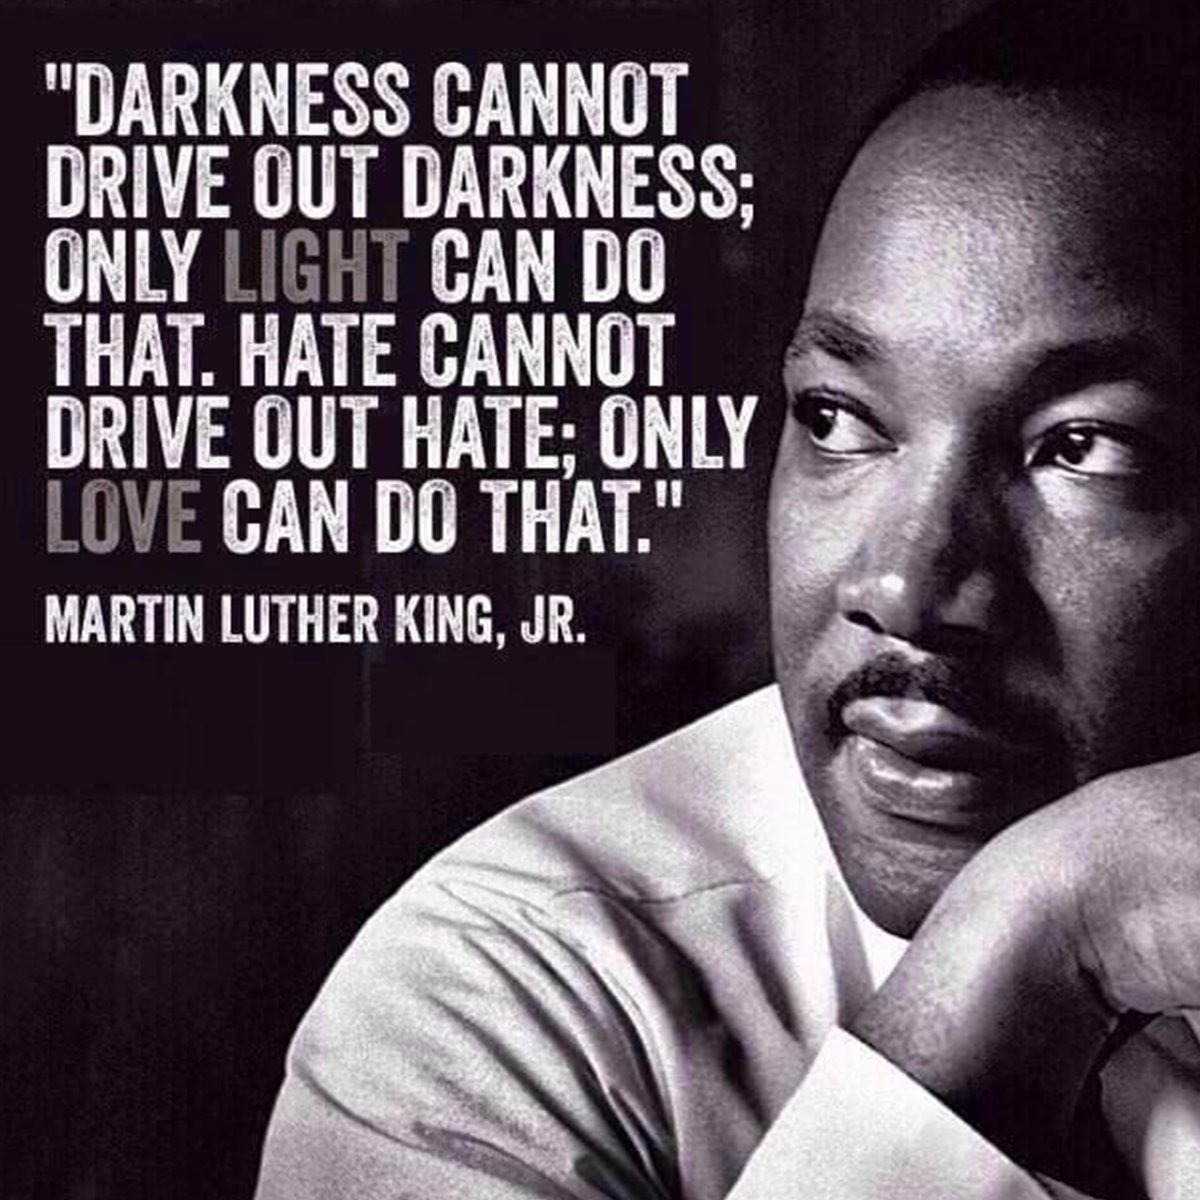 The world could use this much-needed wisdom from Dr. King as we celebrate his birthday today.  #truth #love #light #mlk